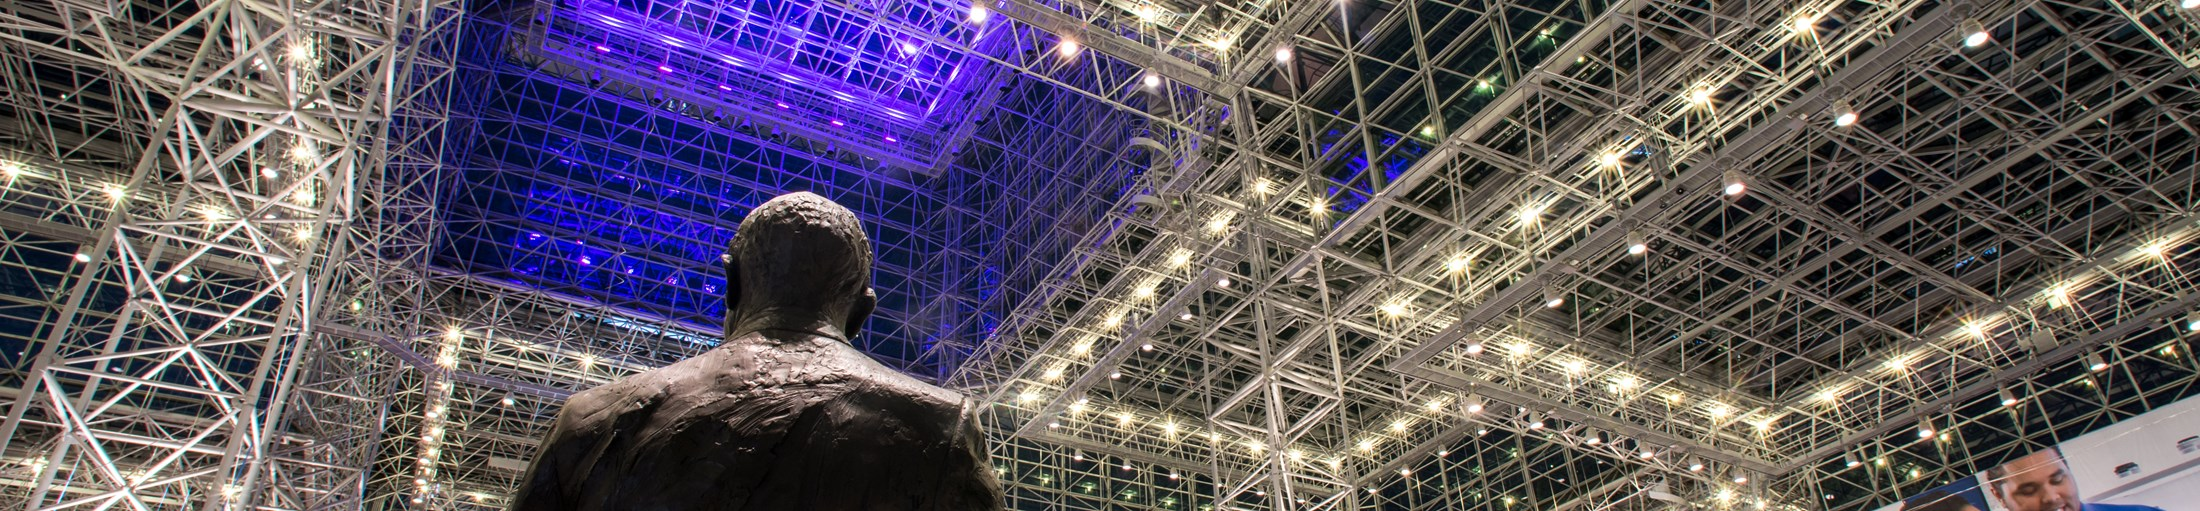 /media/113740/20171026_javits_lights_0005.jpg?crop=0.095759377093101131,0.343222565784737,0.15072421299397193,0.39453051784846915&cropmode=percentage&width=2200&height=511&rnd=131789738790000000